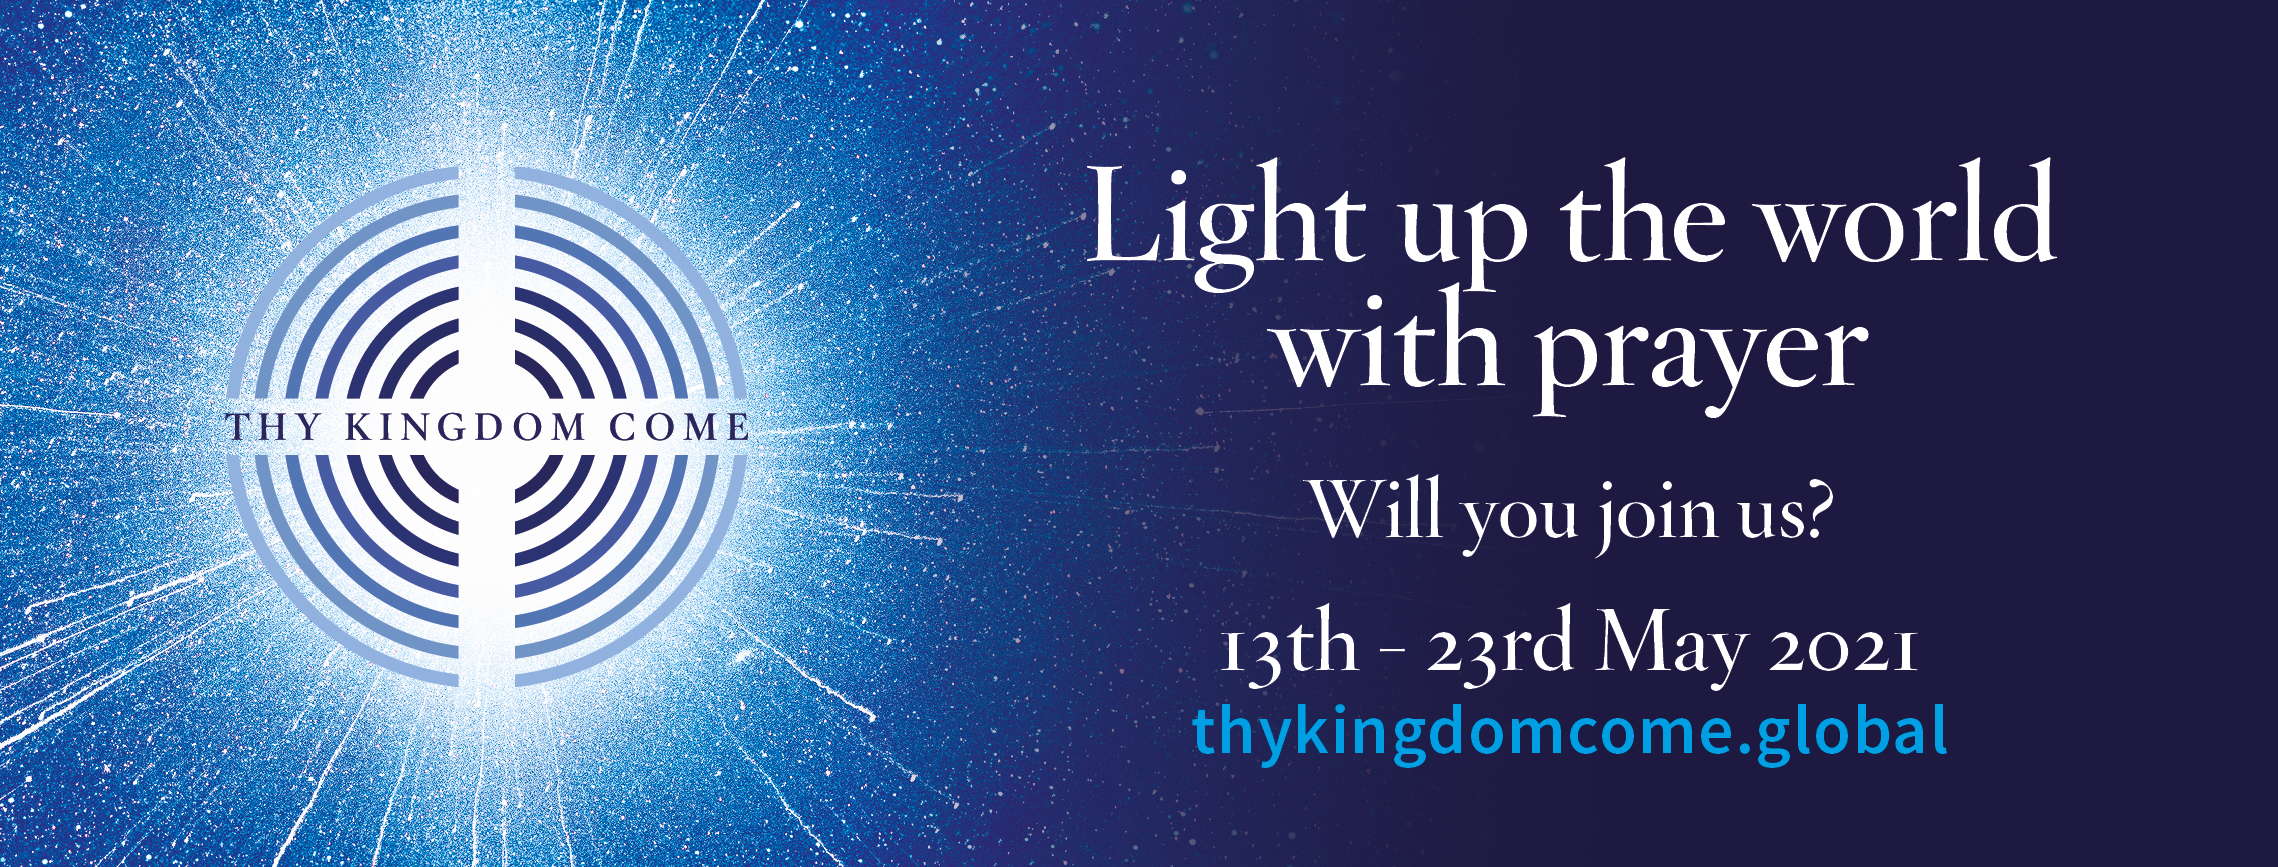 Thy Kingdom Come set to unveil plans for this year at virtual launch event  | Thy Kingdom Come